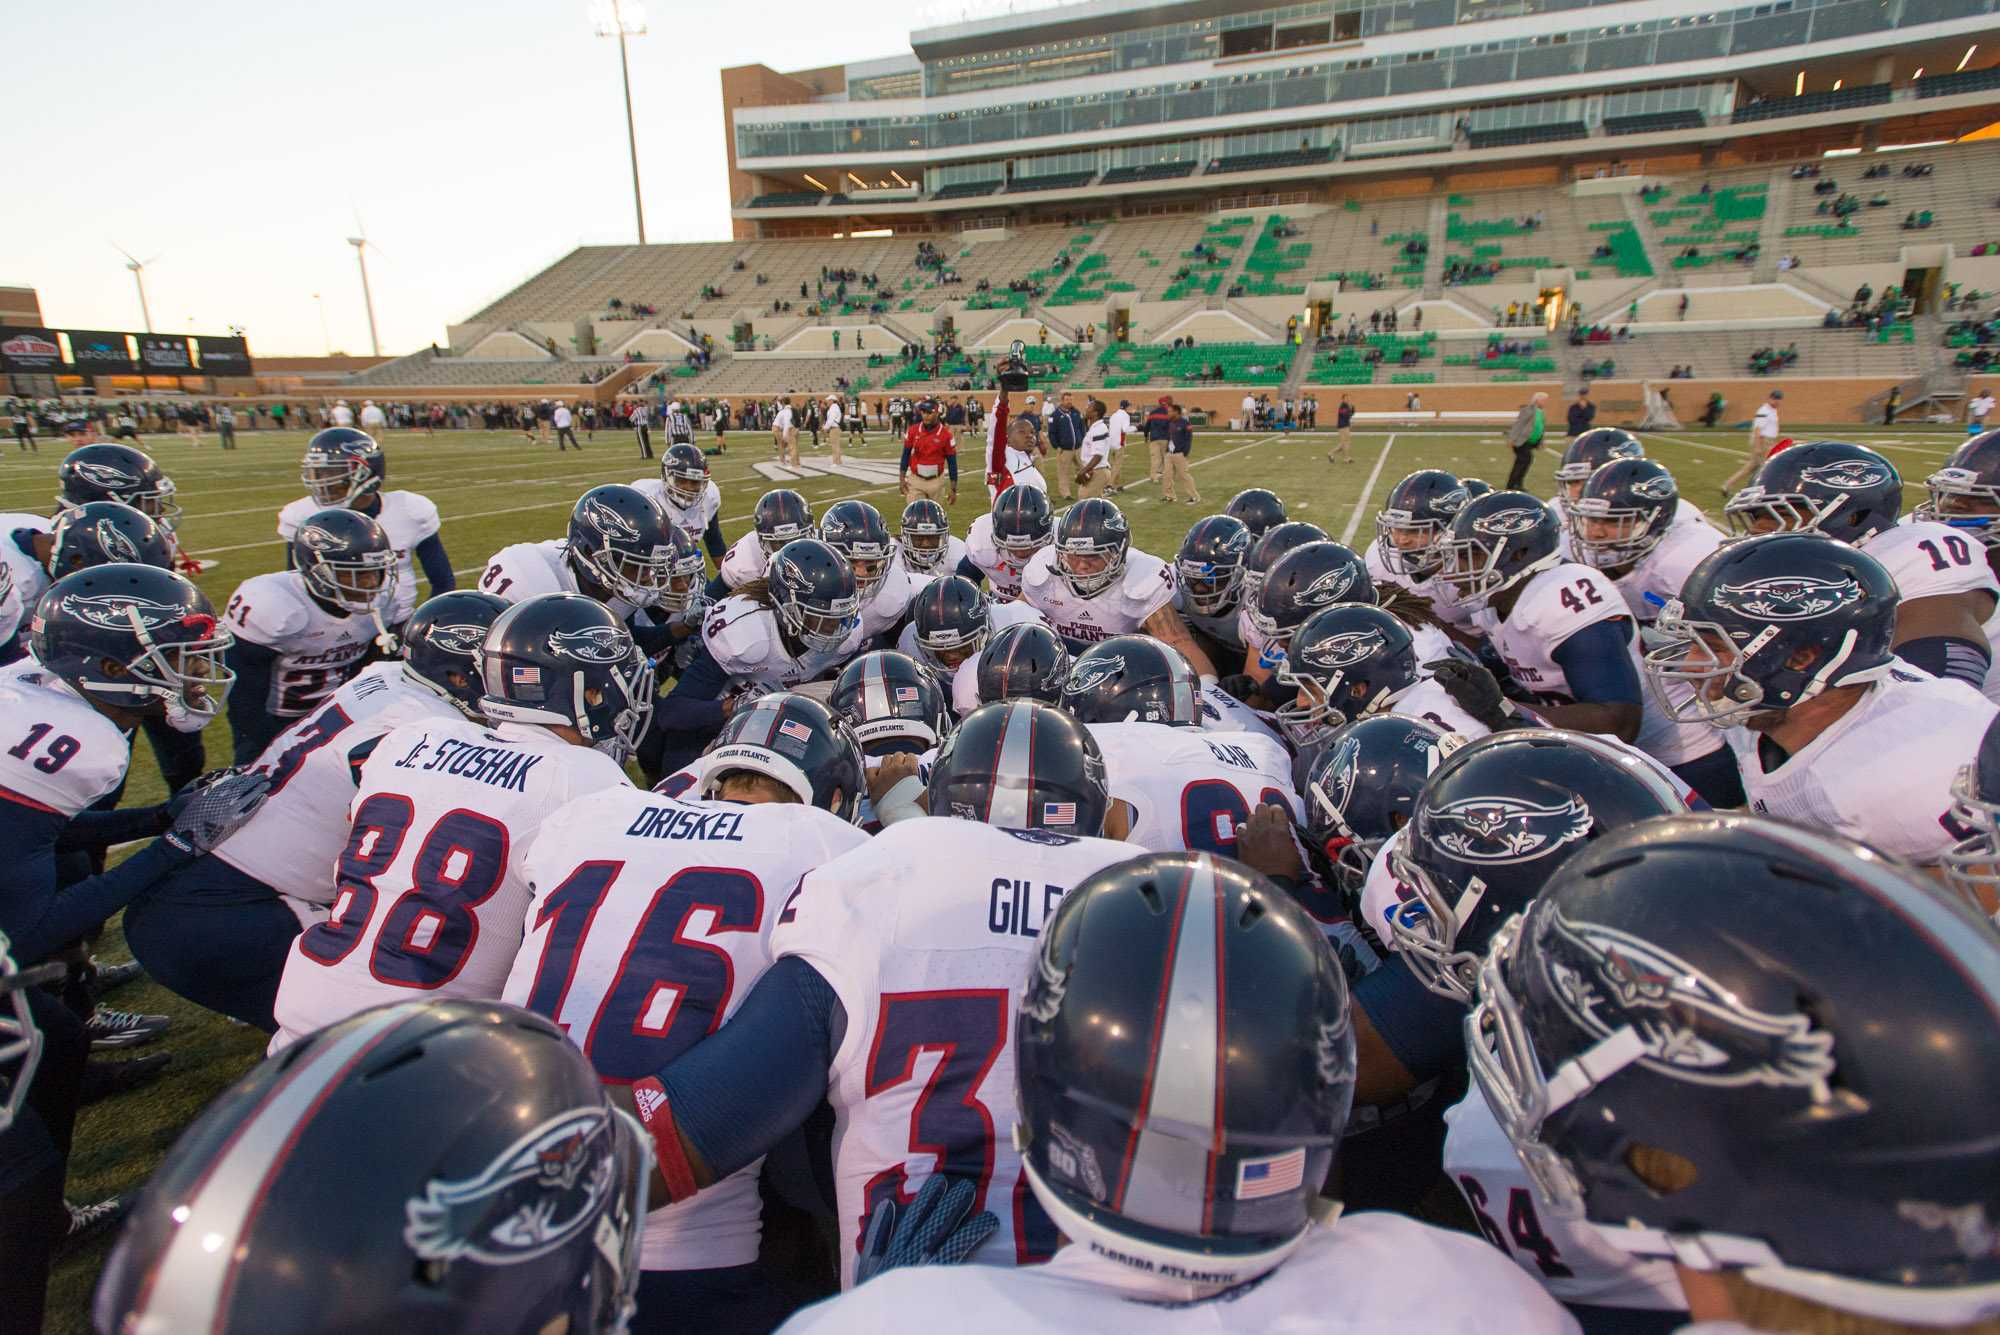 [ Max Jackson | Photo Editor ] The FAU Owls huddle up before their game against North Texas on Saturday, Nov. 8.